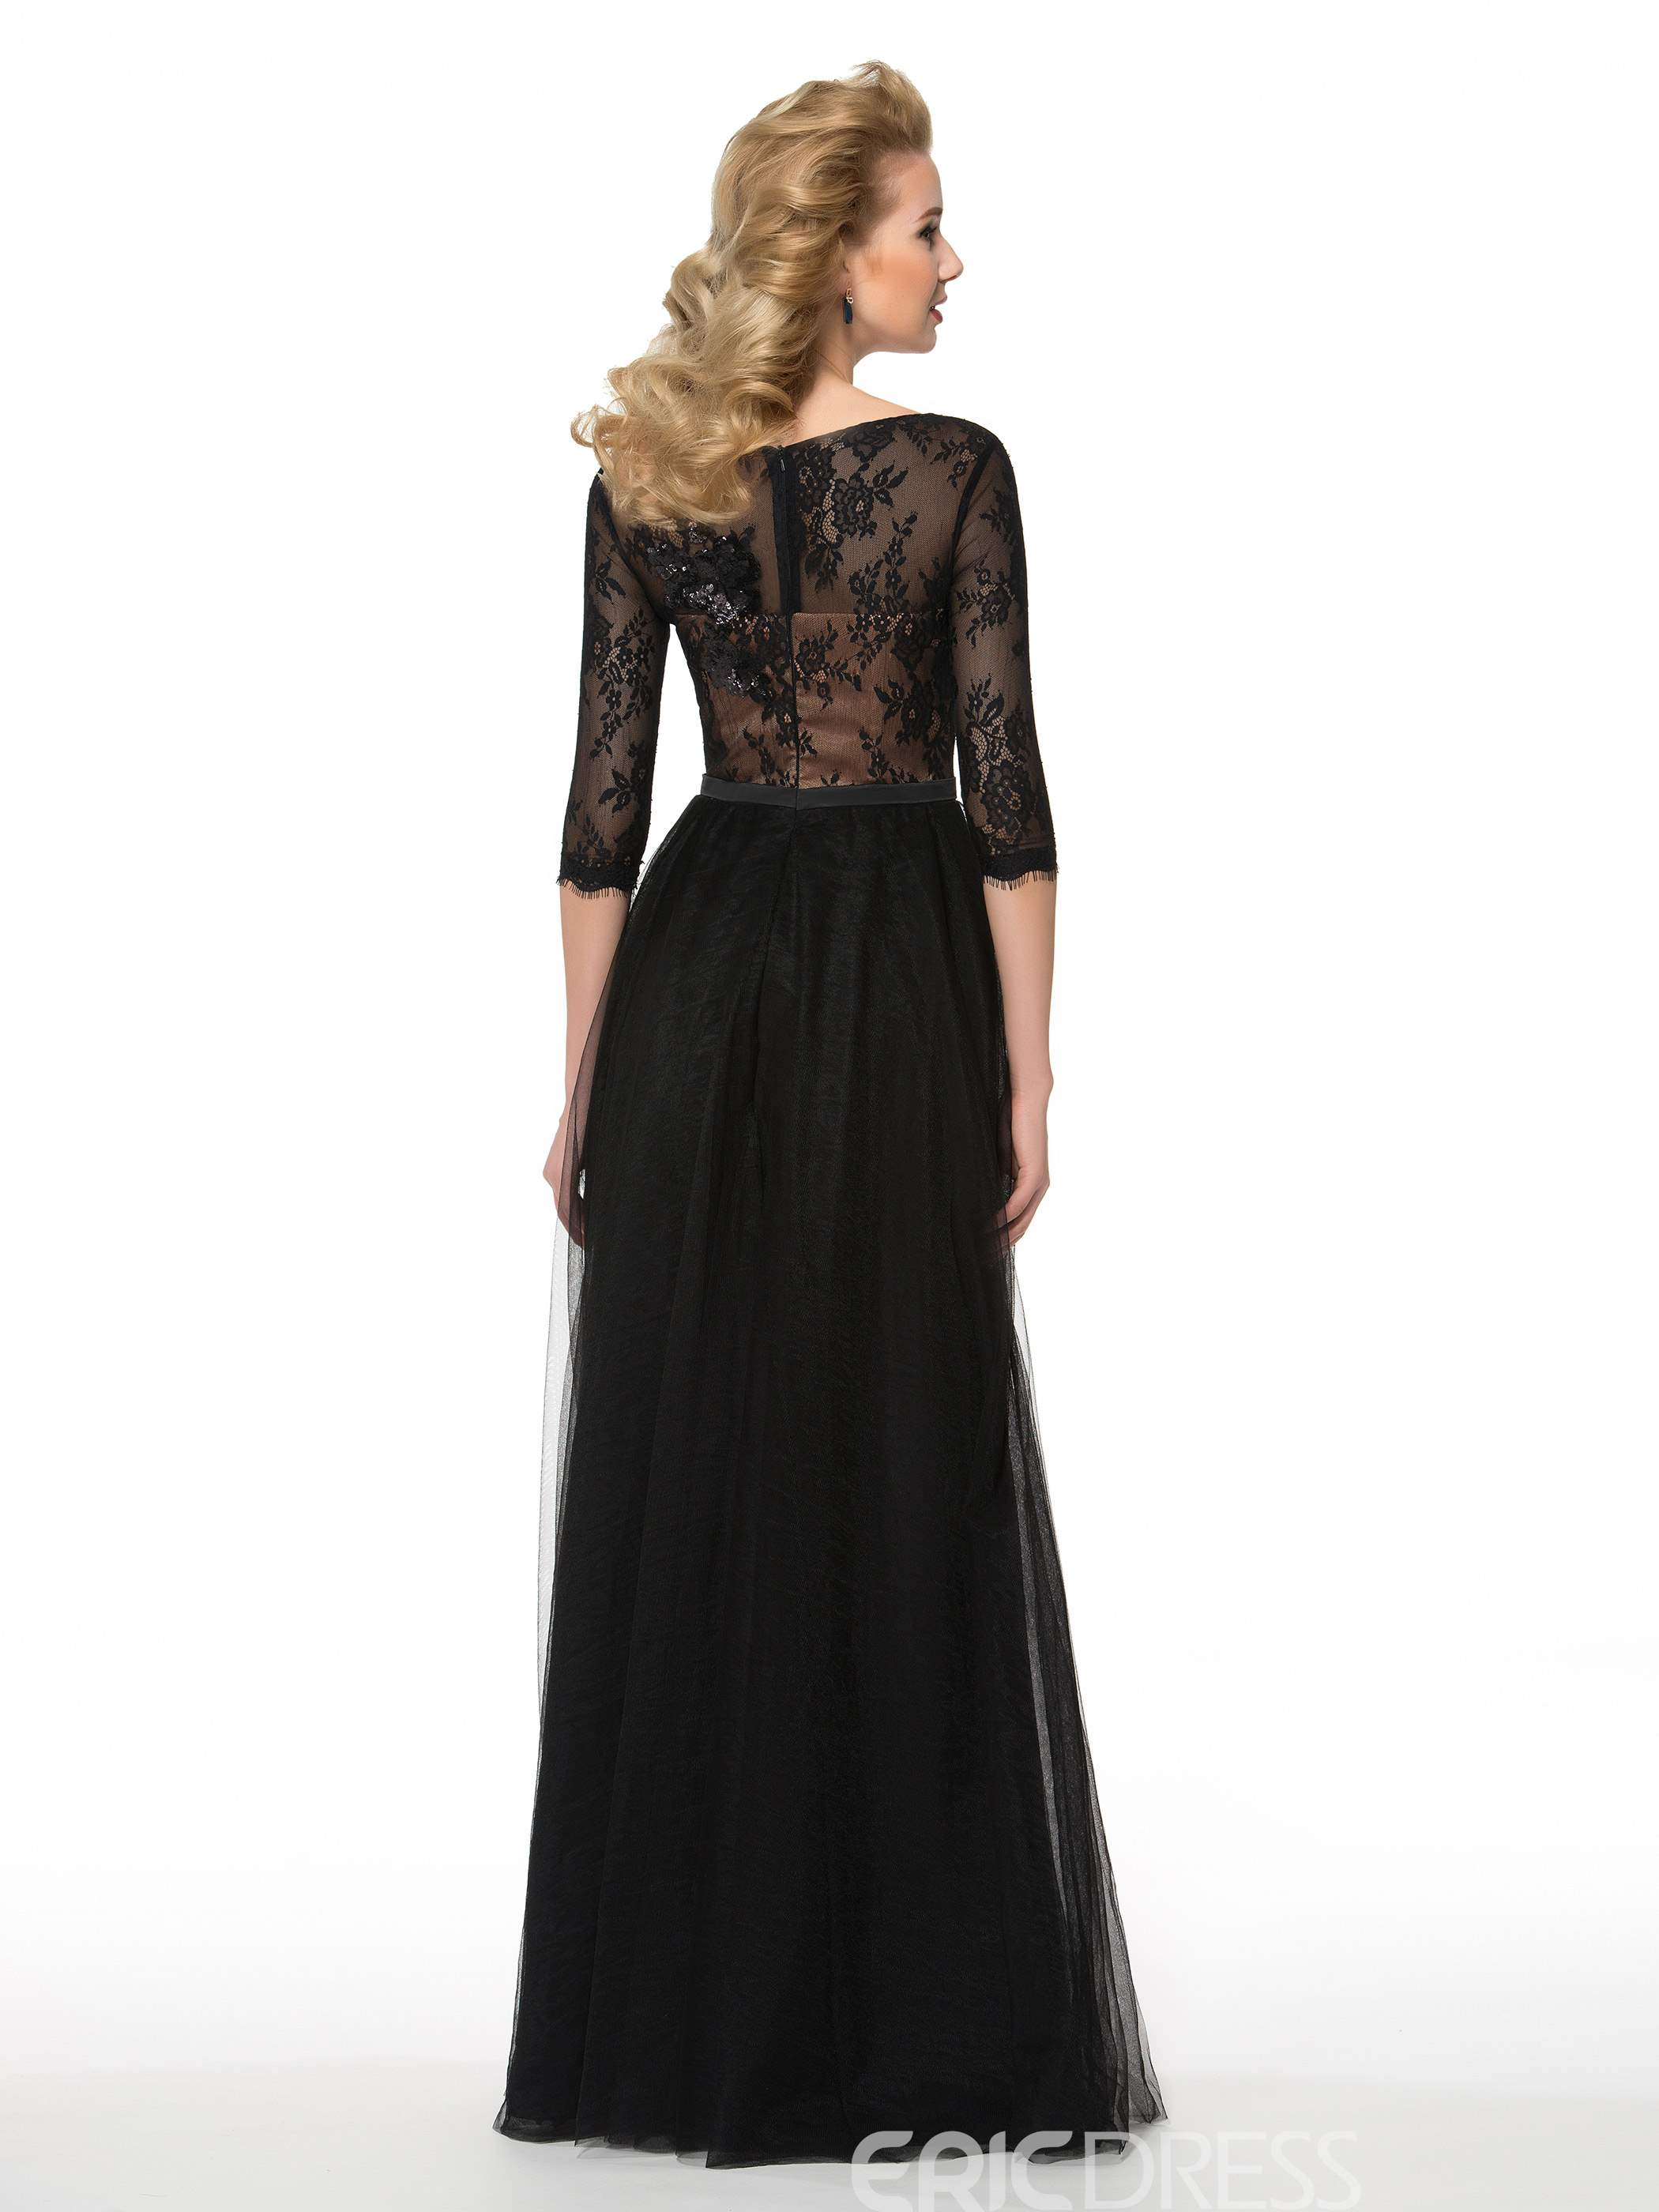 Ericdress Elegant Half Sleeves A Line Long Mother of the Bride Dress